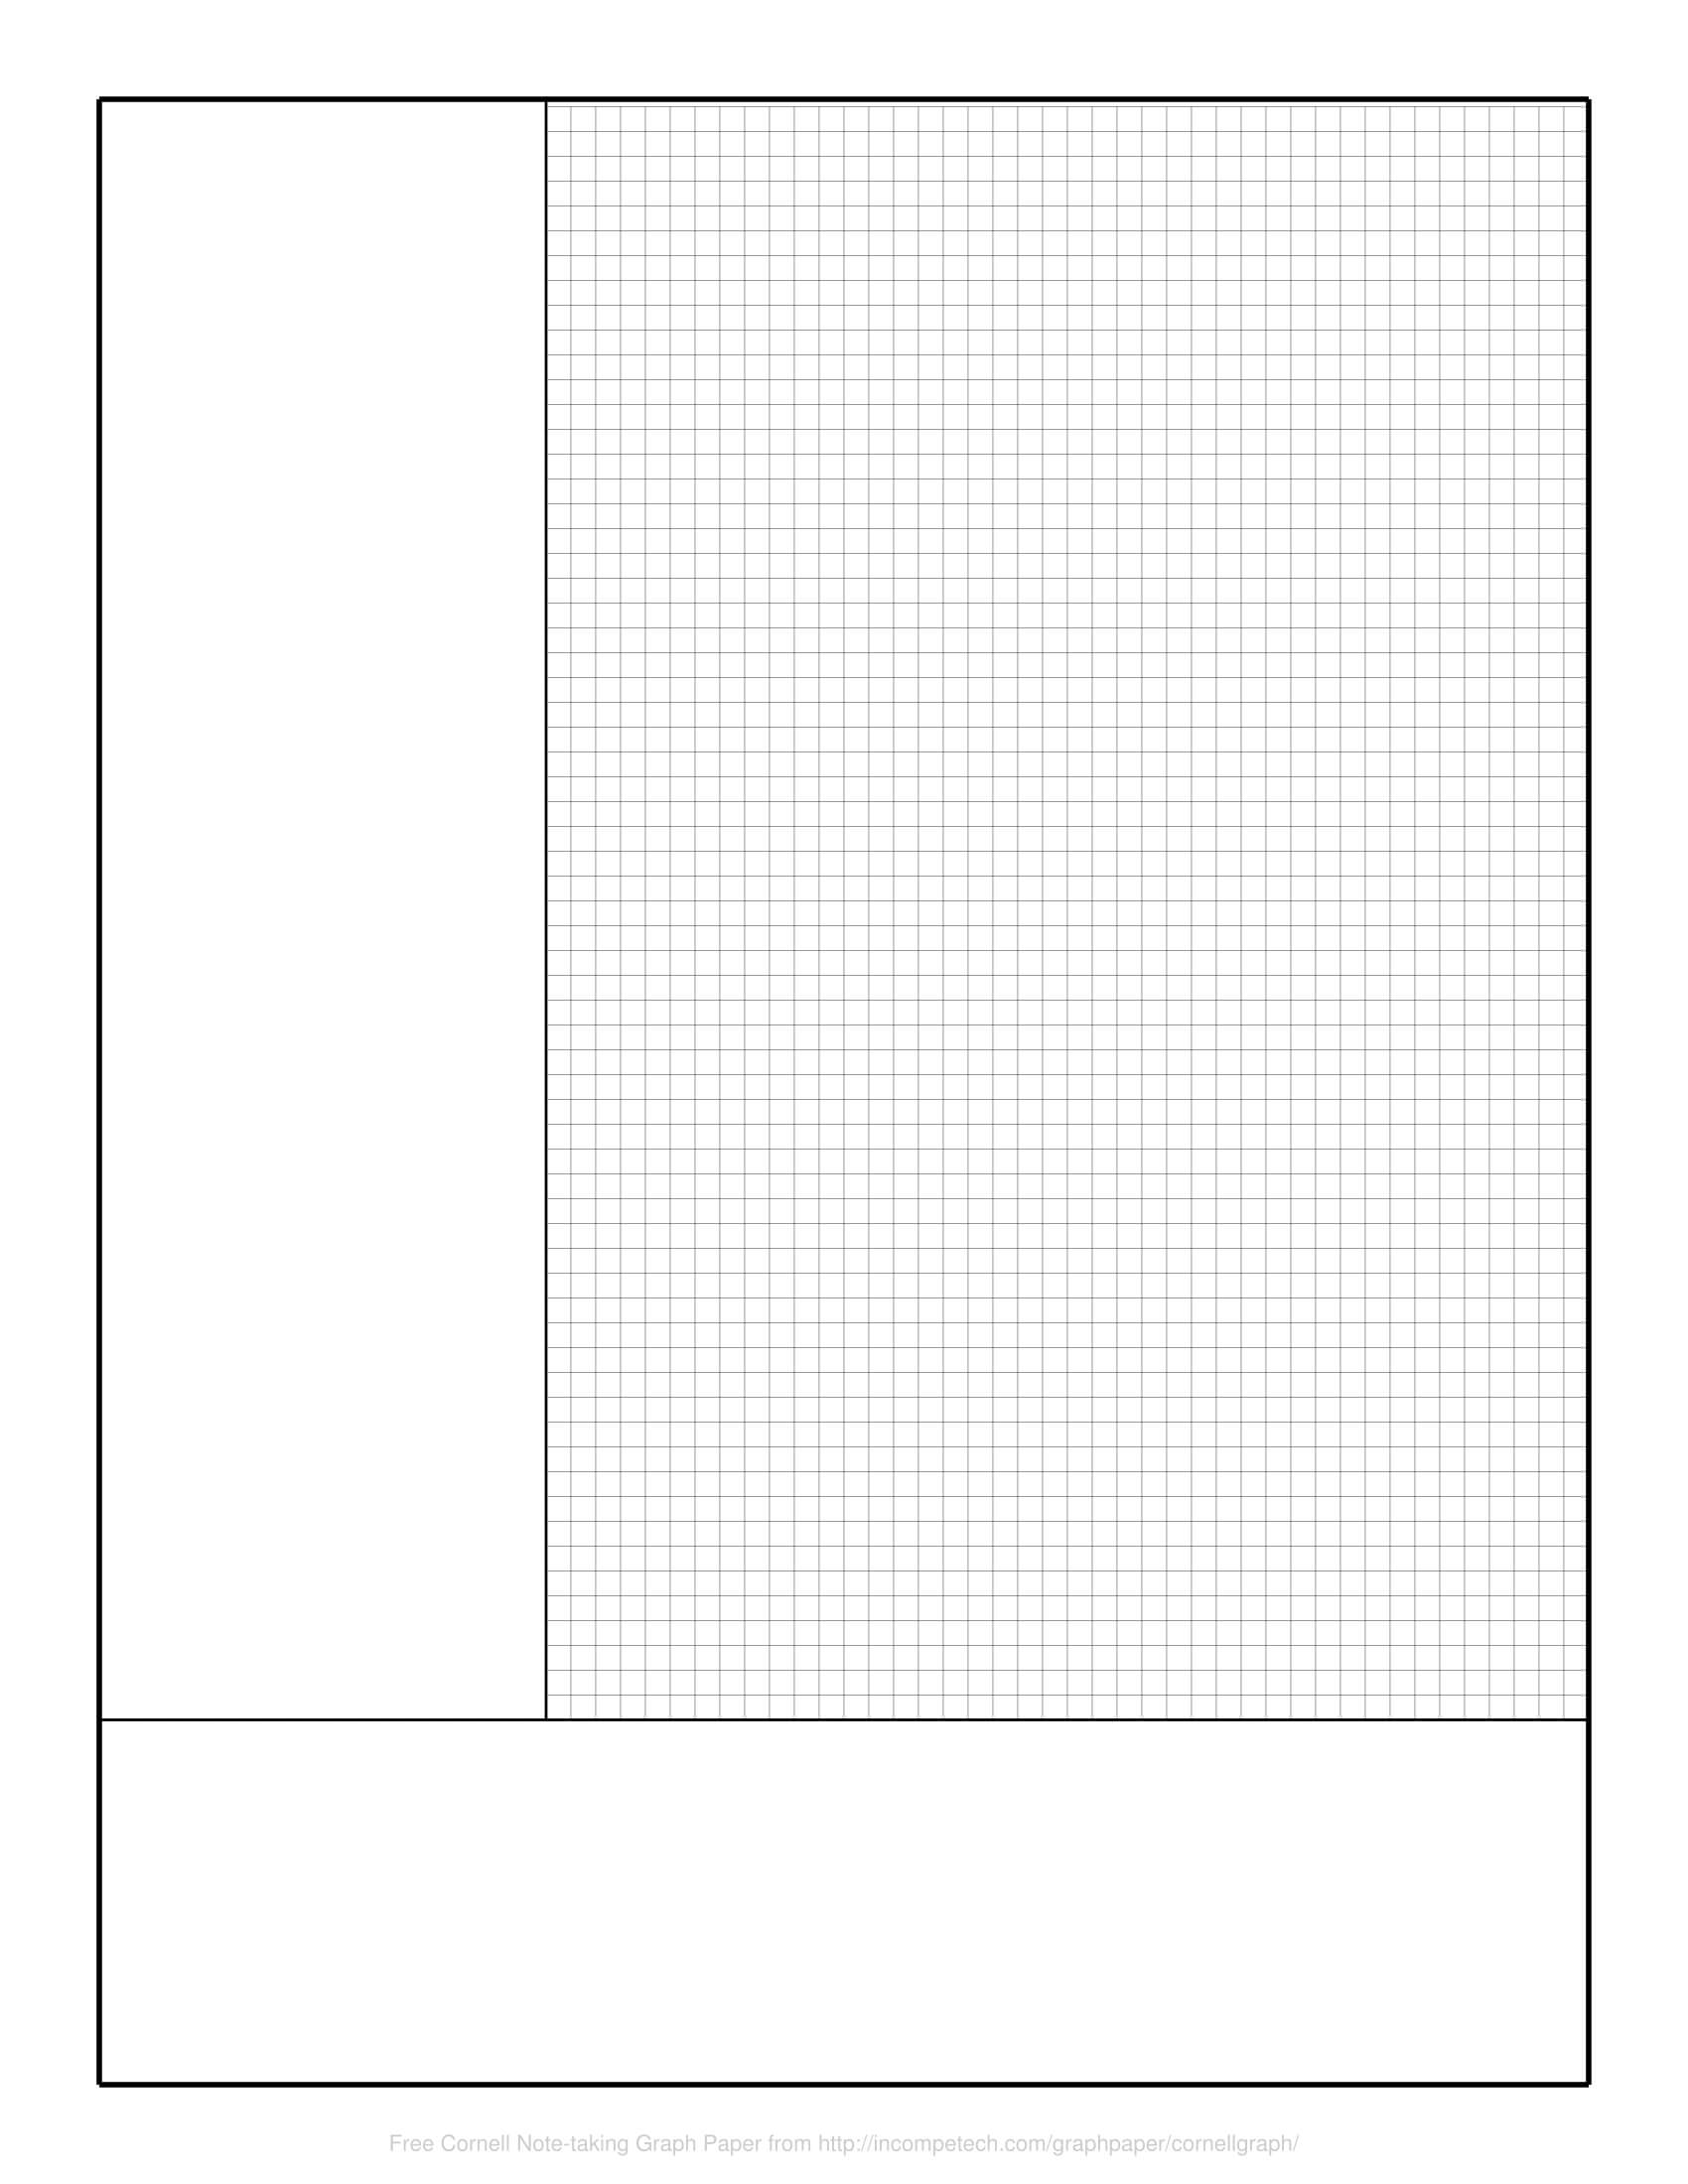 Free Online Graph Paper / Cornell Note-Taking Graph pertaining to Cornell Note Template Word